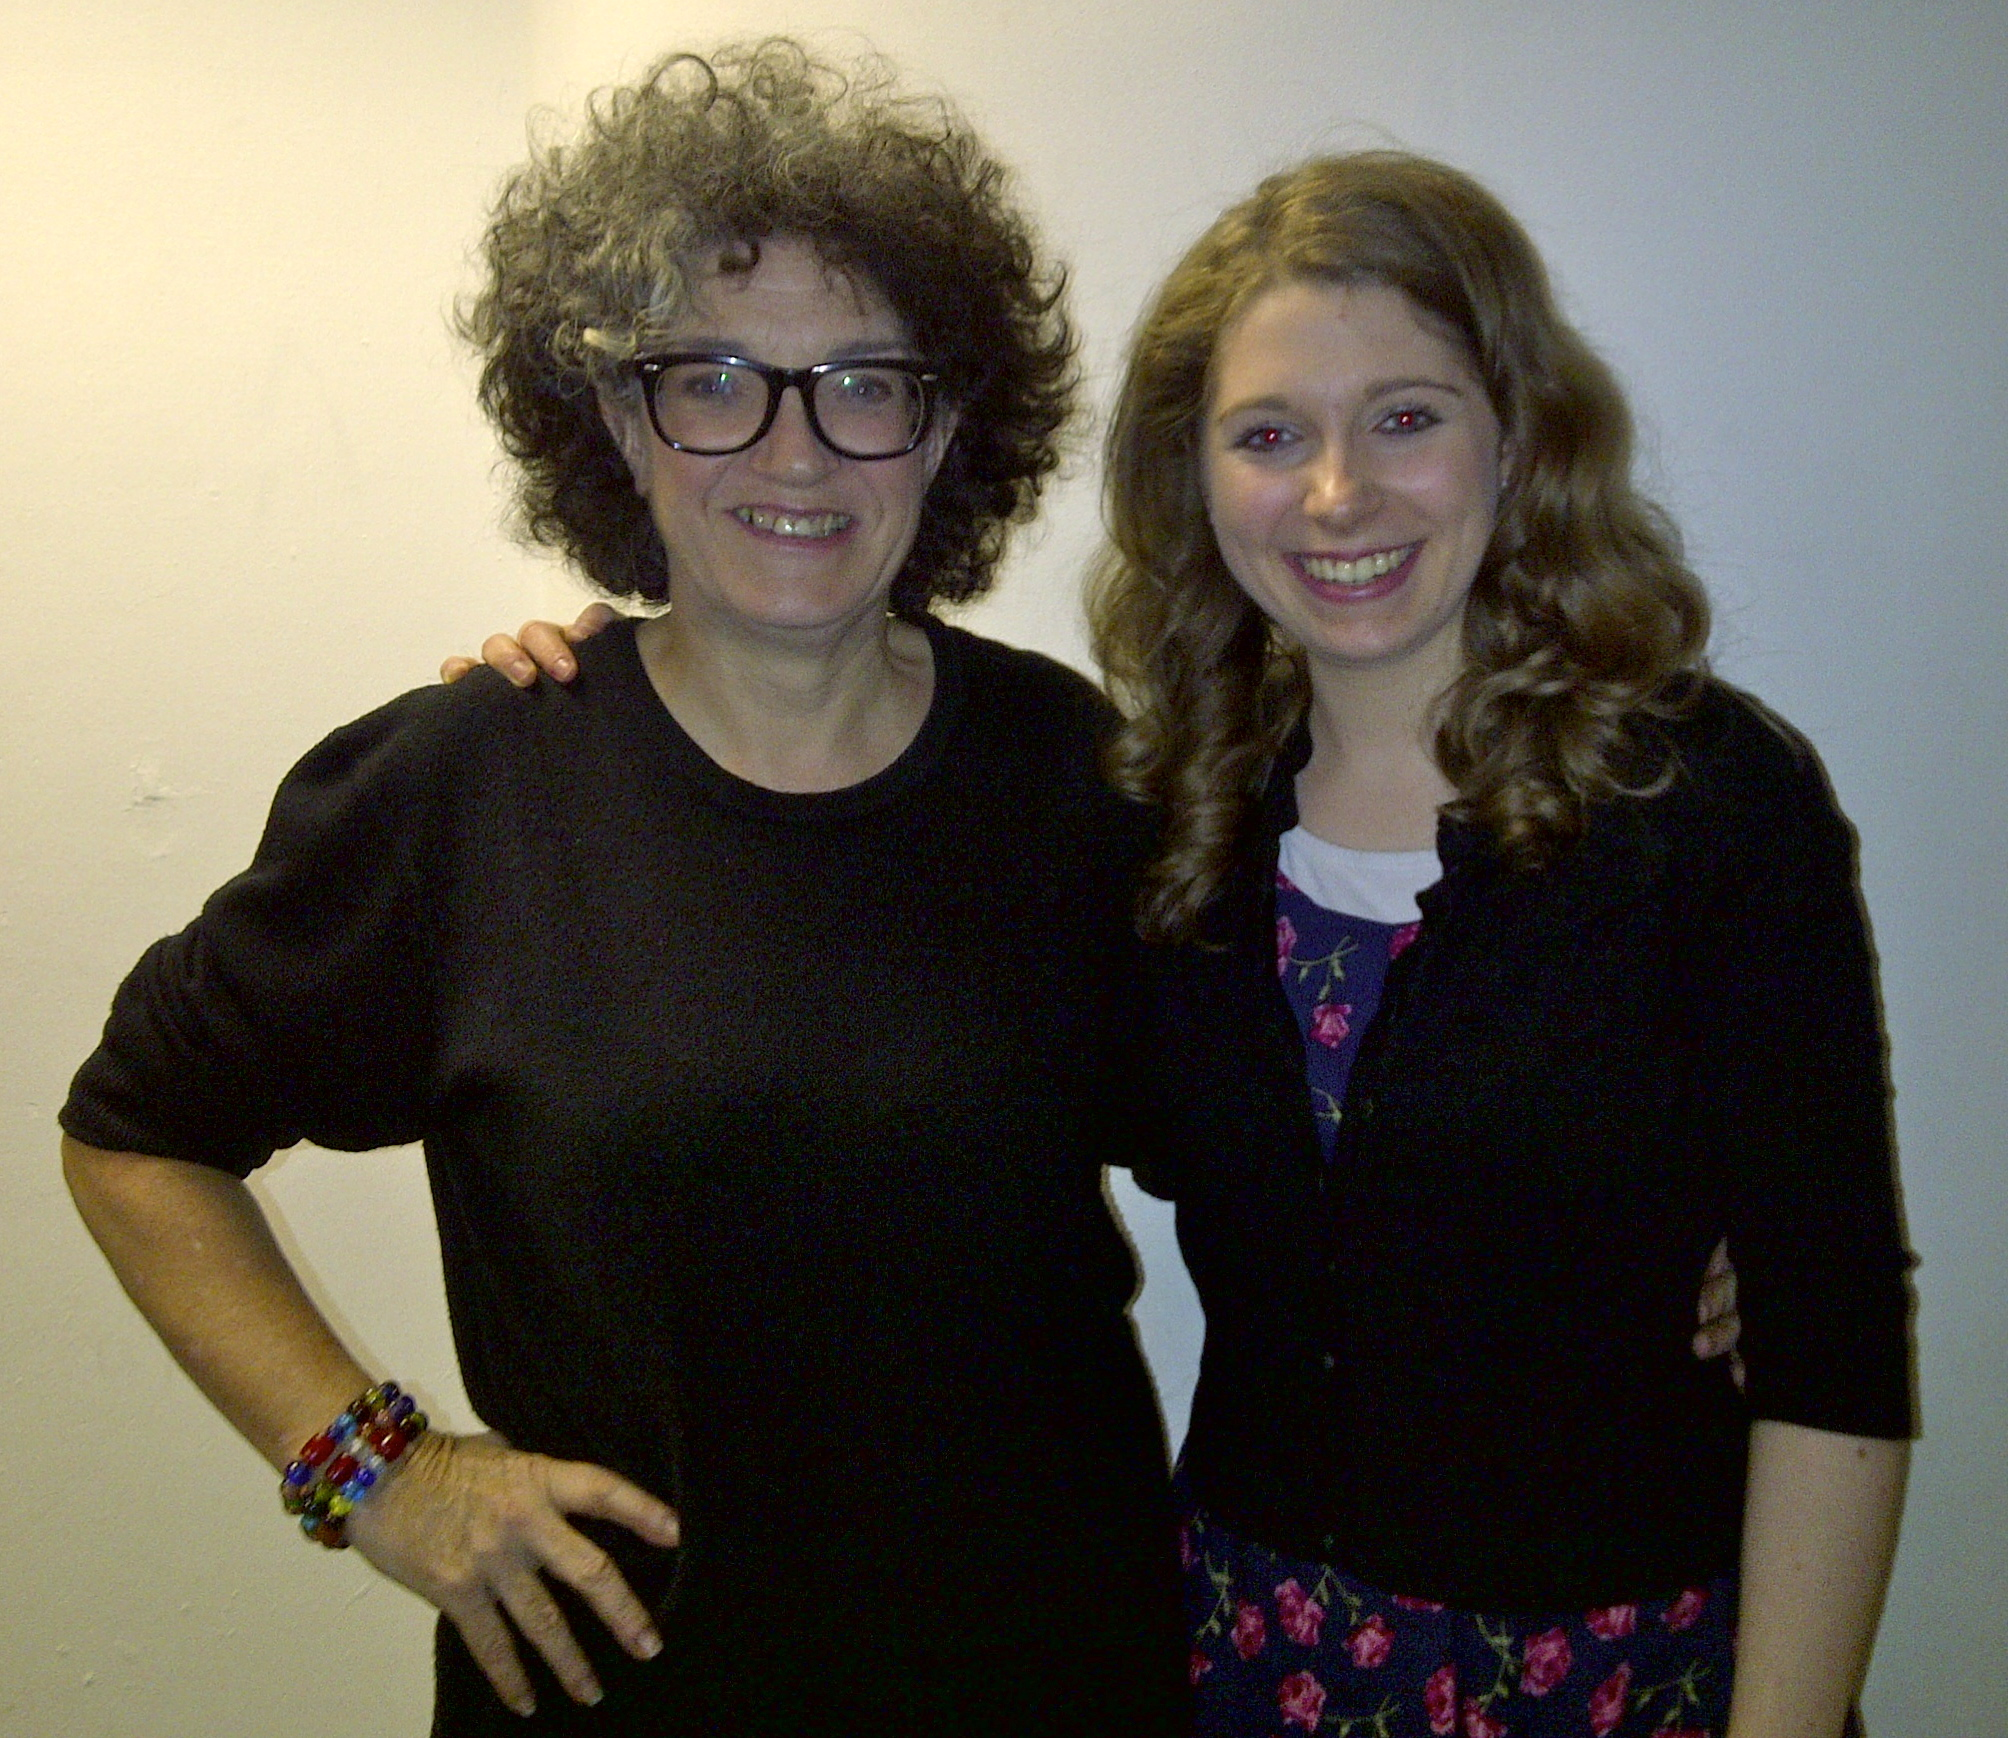 Image of Kate Copstick and Sara Shulman